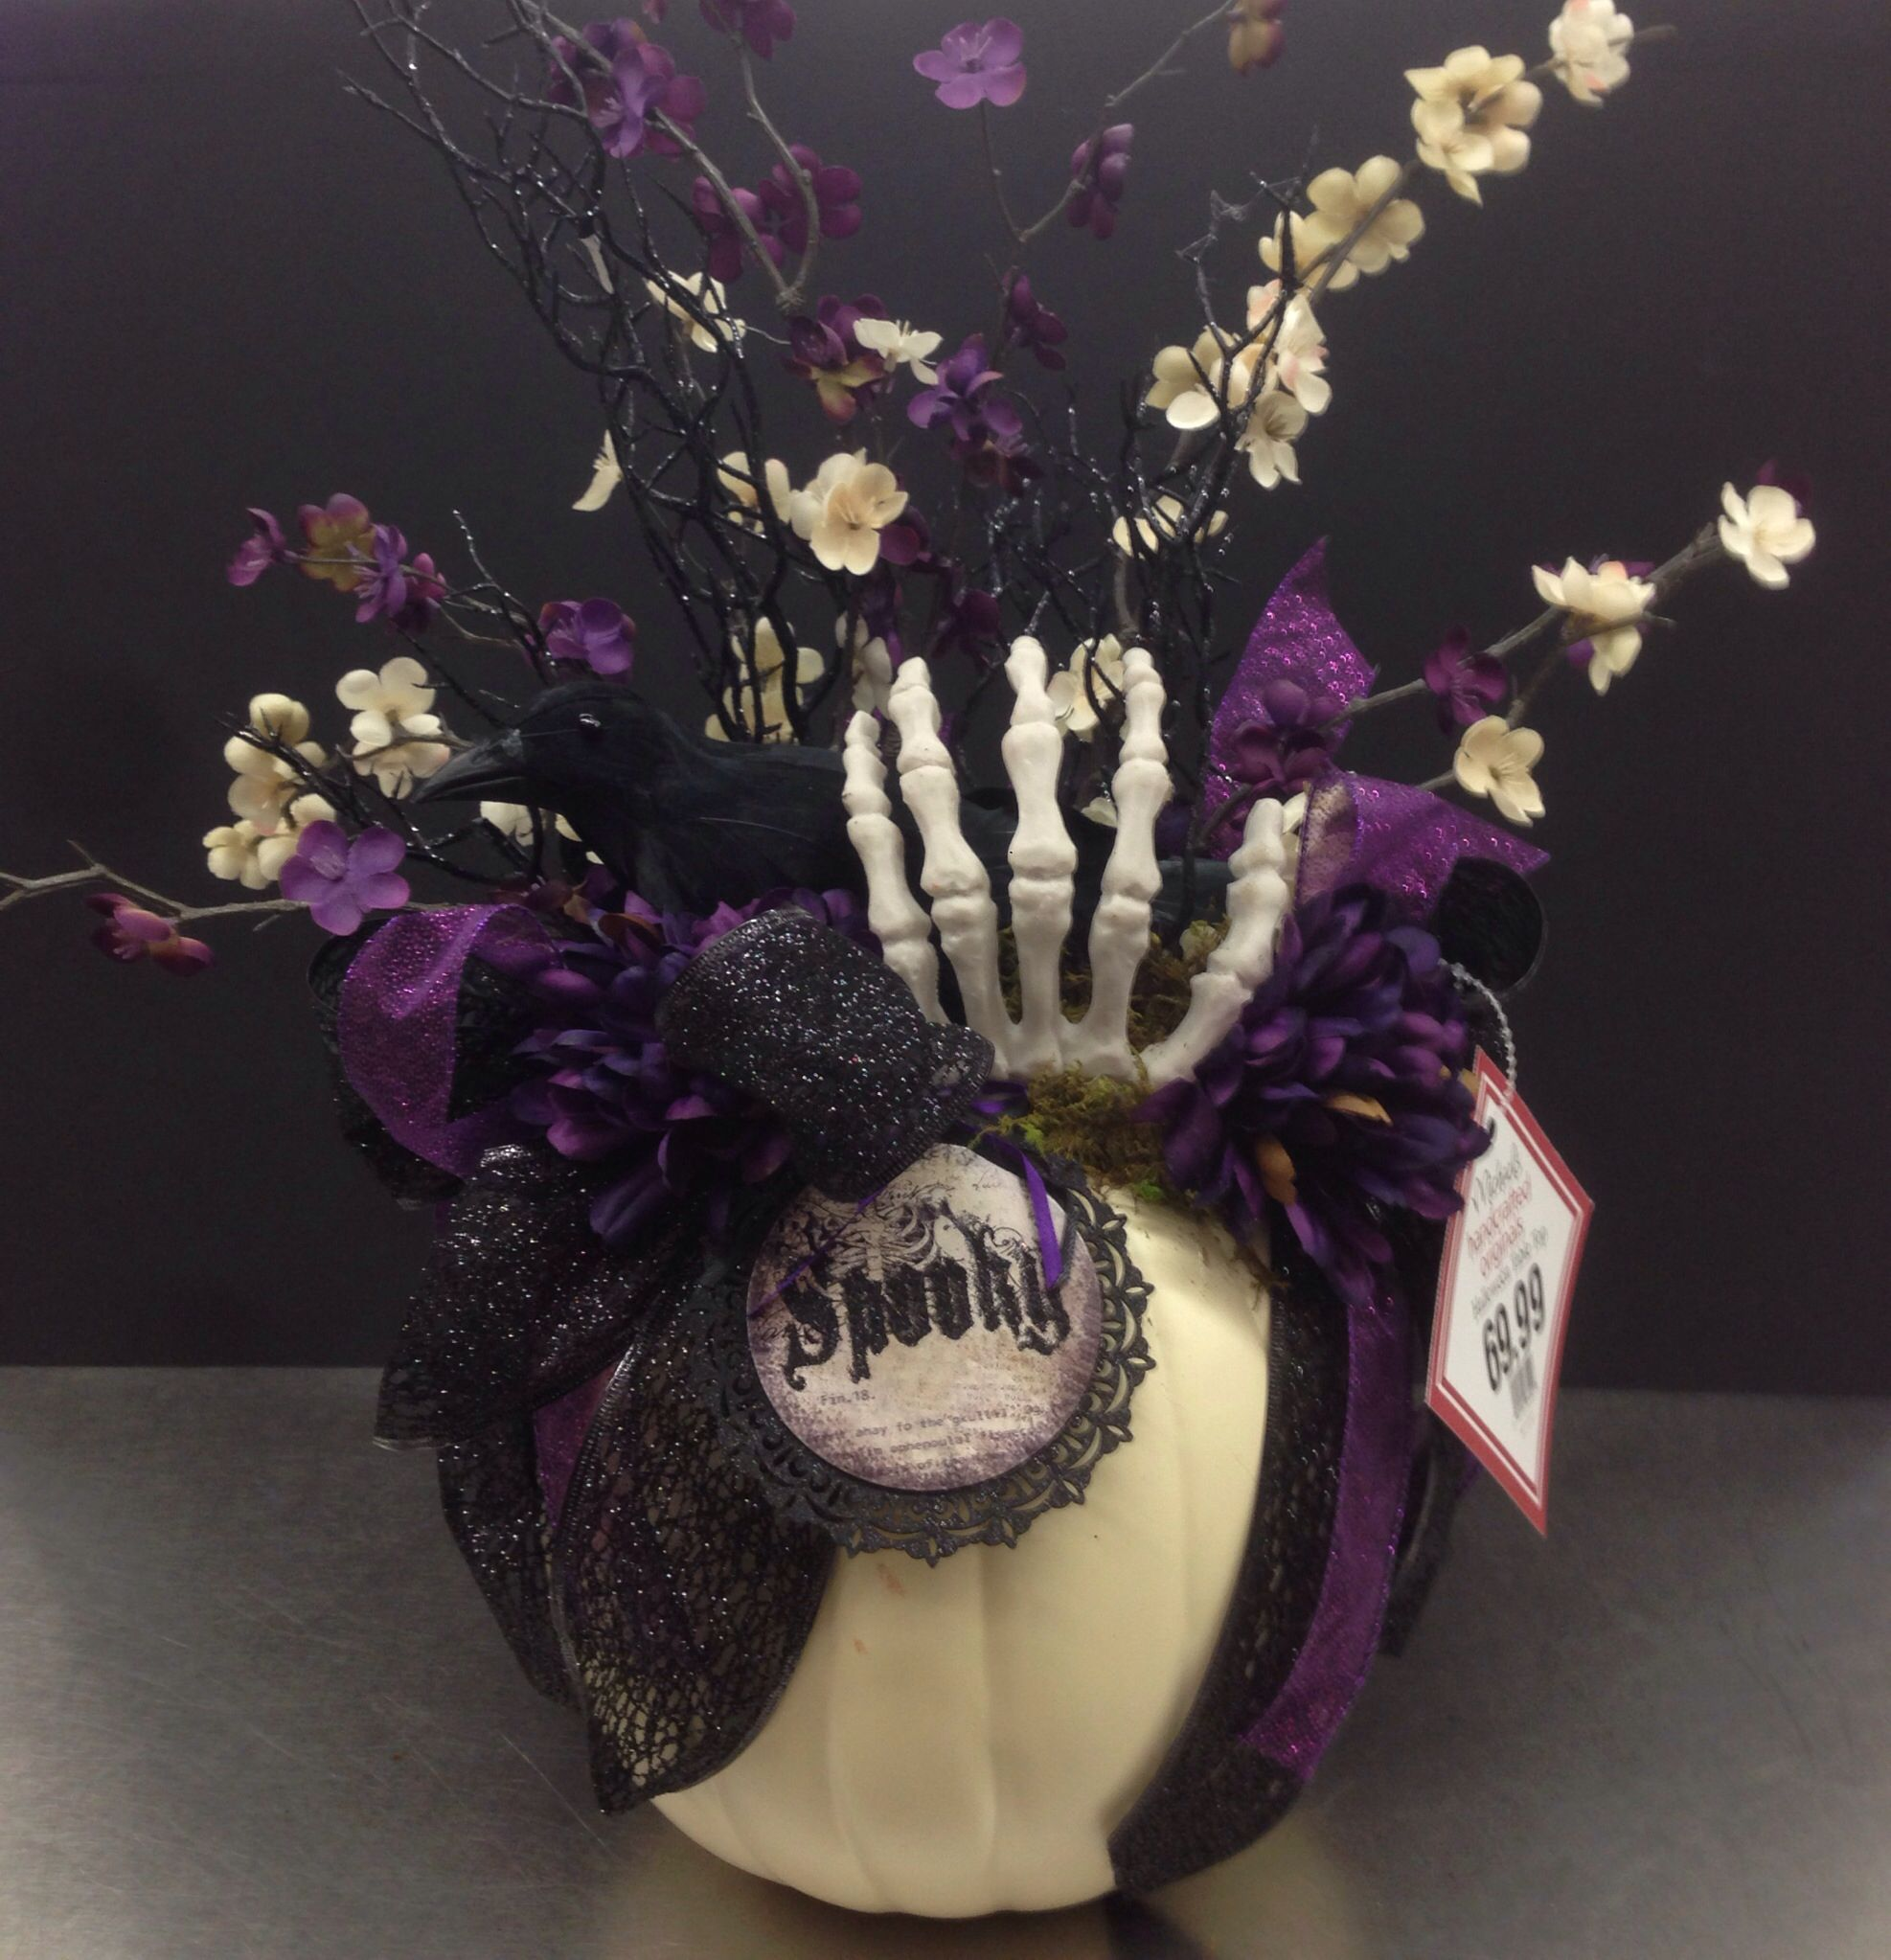 nevermore halloween collection floral design tara powers michaels of midlothian va